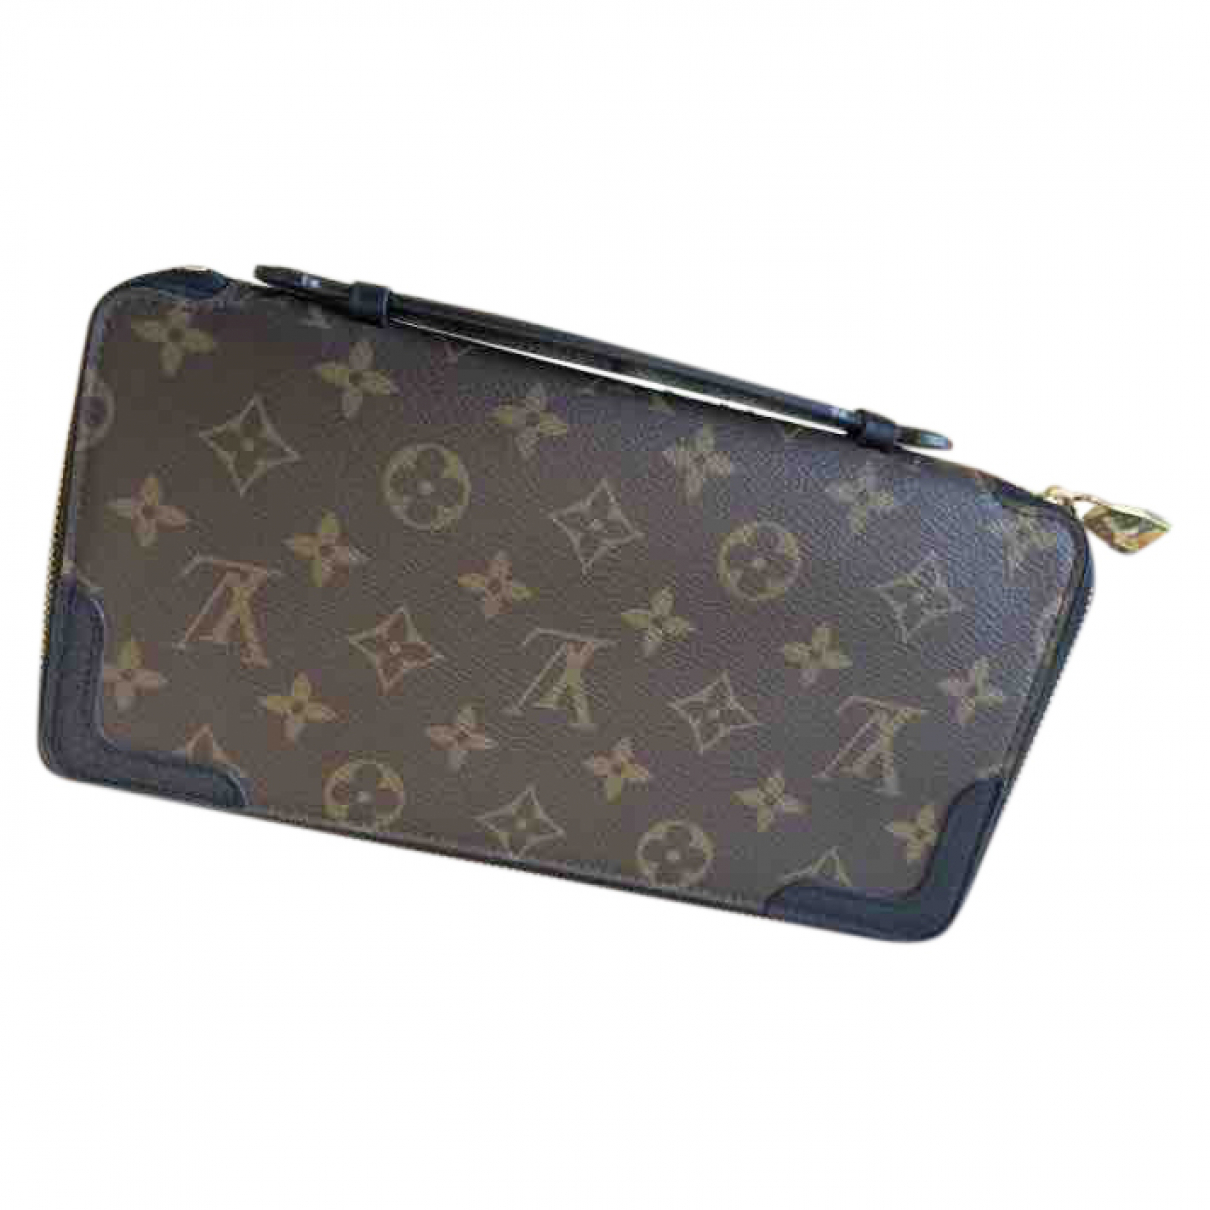 Louis Vuitton Zippy XL Brown Cloth Small bag, wallet & cases for Men N